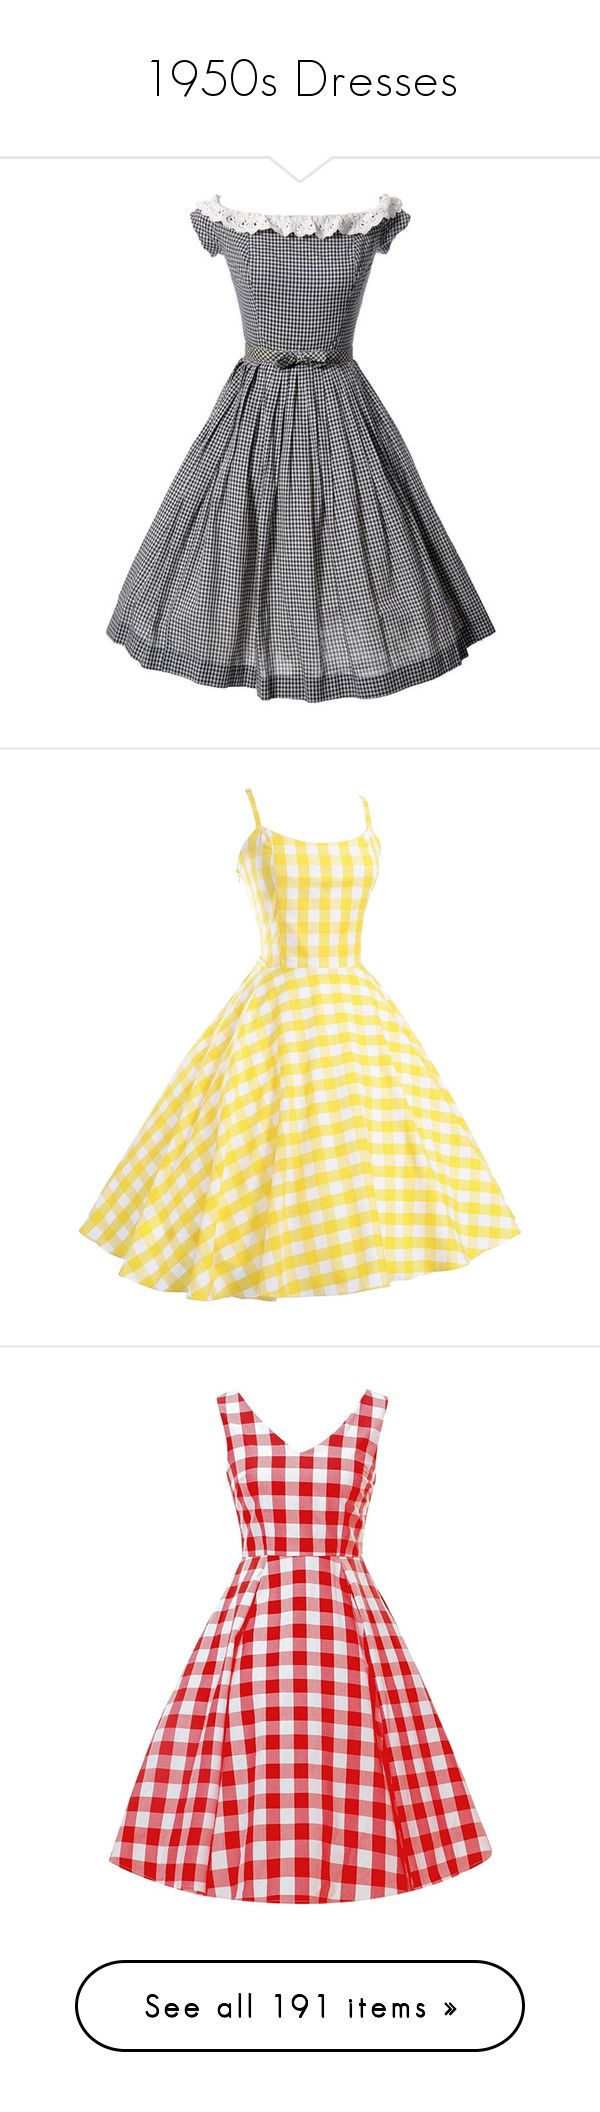 """1950s Dresses"" by mickjaggerismydrug ❤ liked on Polyvore featuring dresses, bow dress, black and white bow dress, white black dress, black and white dress, vintage gingham dress, yellow vintage dress, rockabilly dresses, vintage rockabilly dresses and yellow cocktail dress"